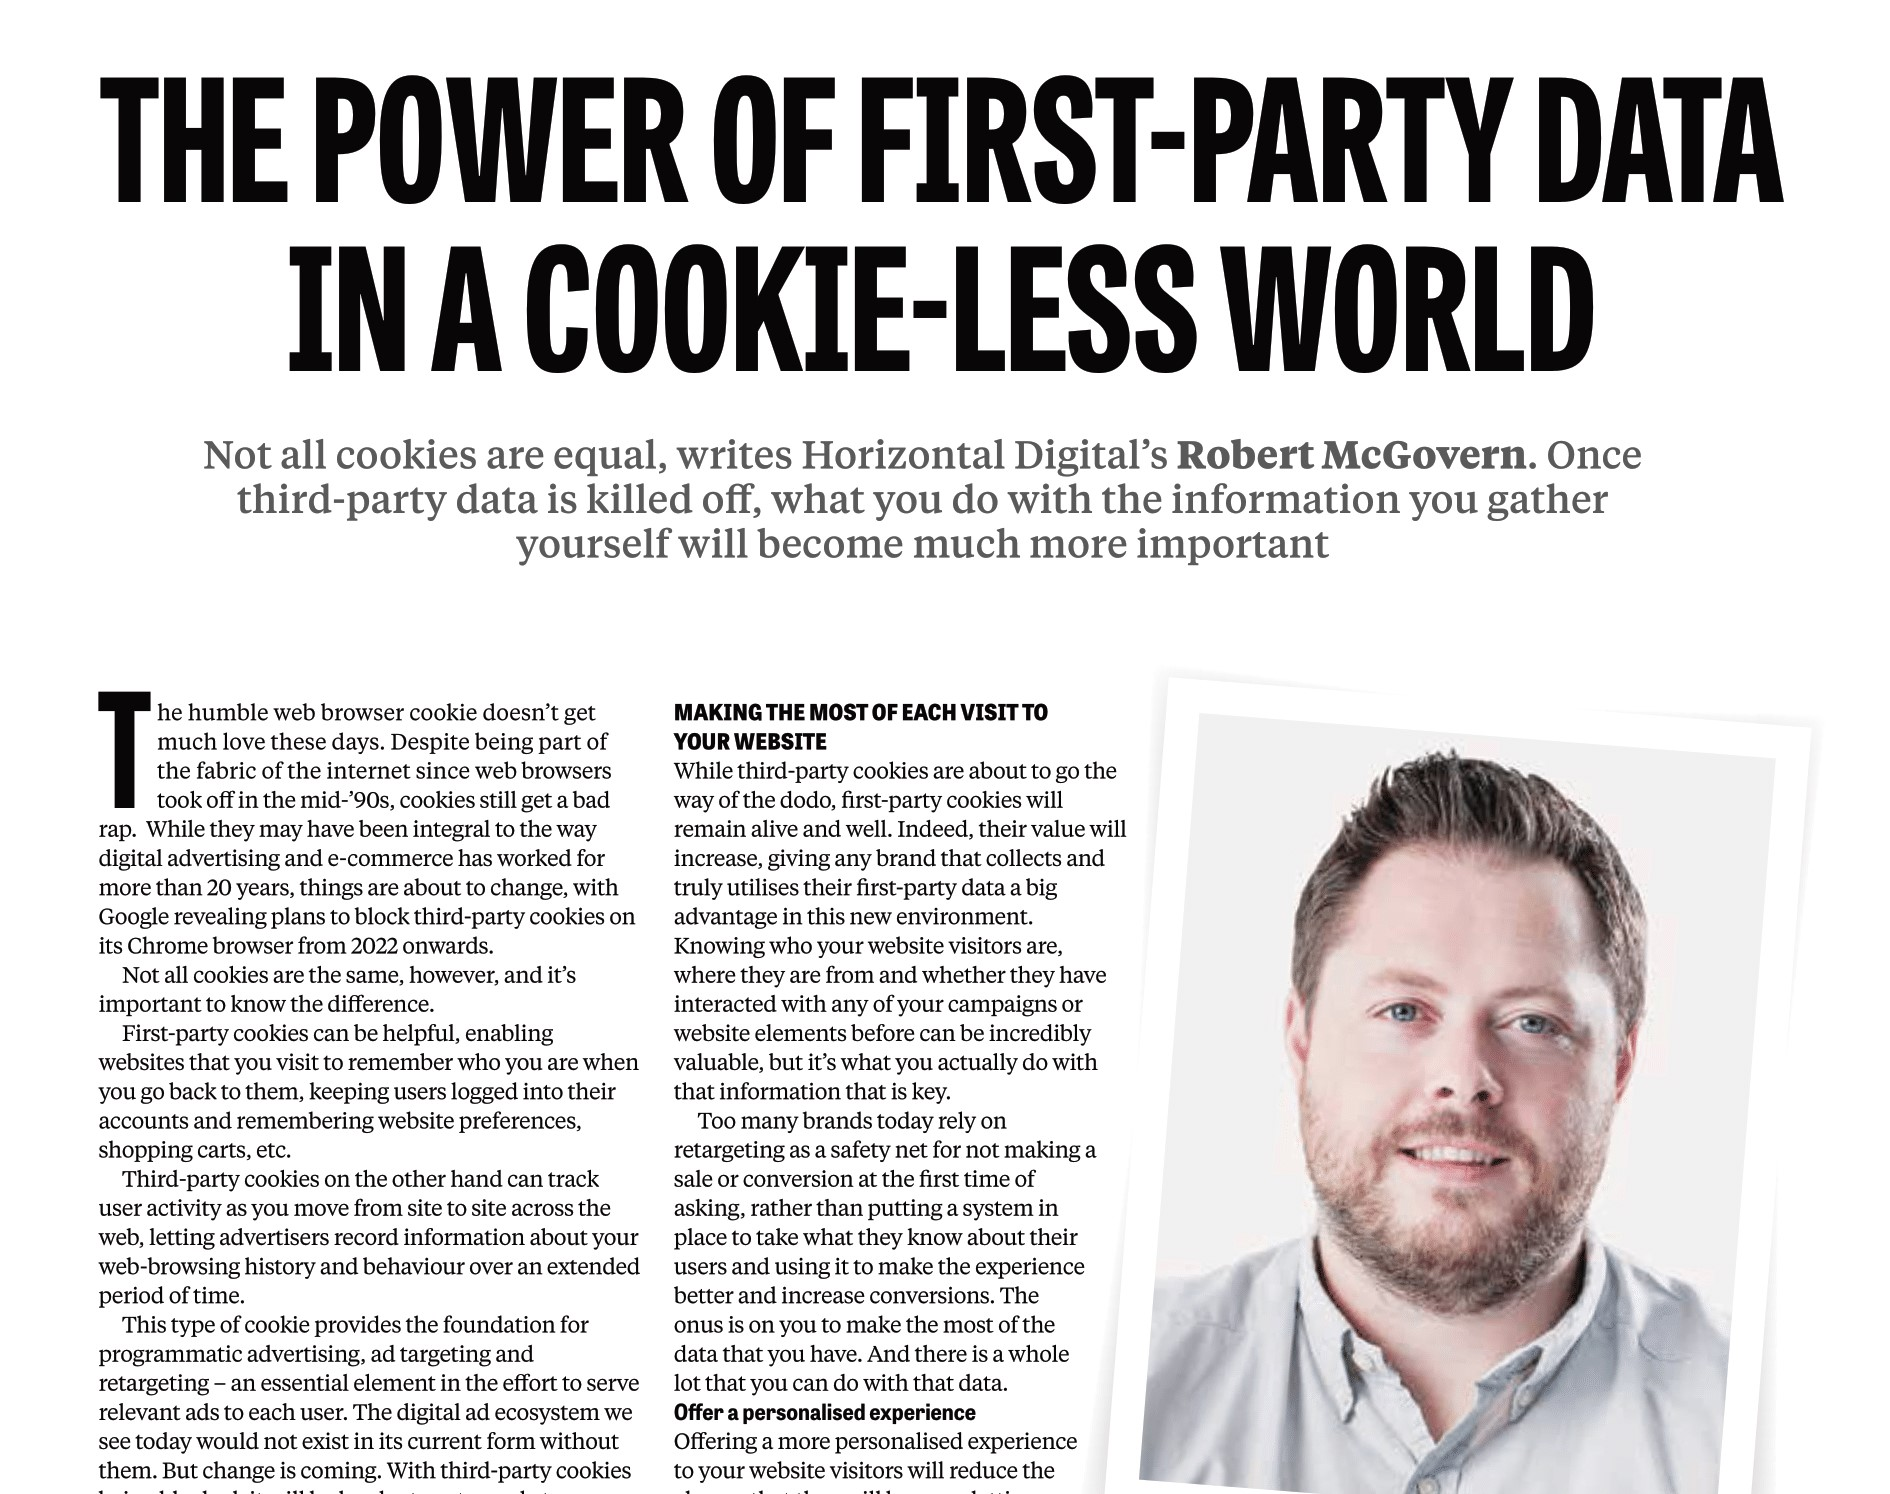 The power of first-party data in a cookie-less world